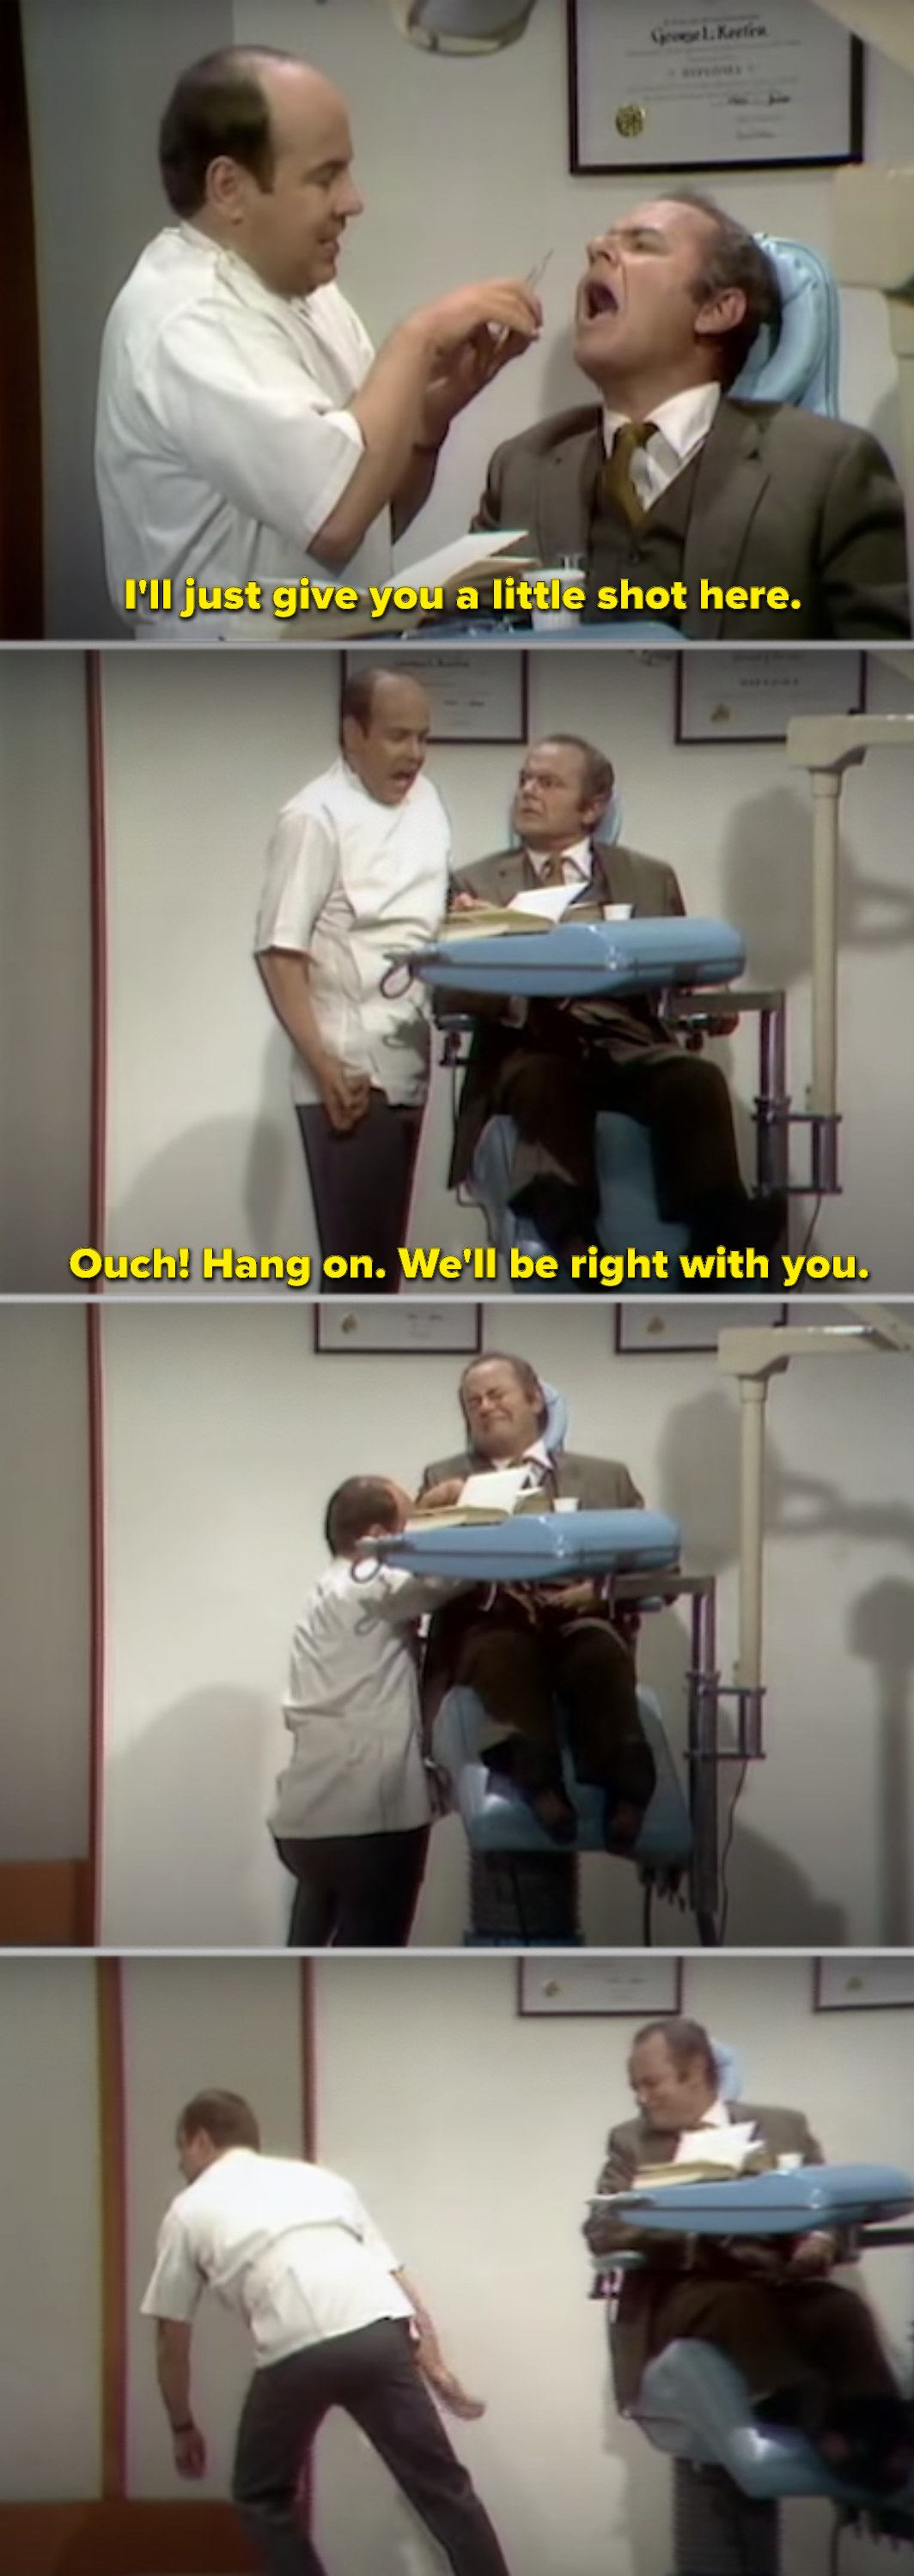 Tim Conway as a dentist getting hit with the Novocaine needle, making his legs and arms go numb in front of a patient